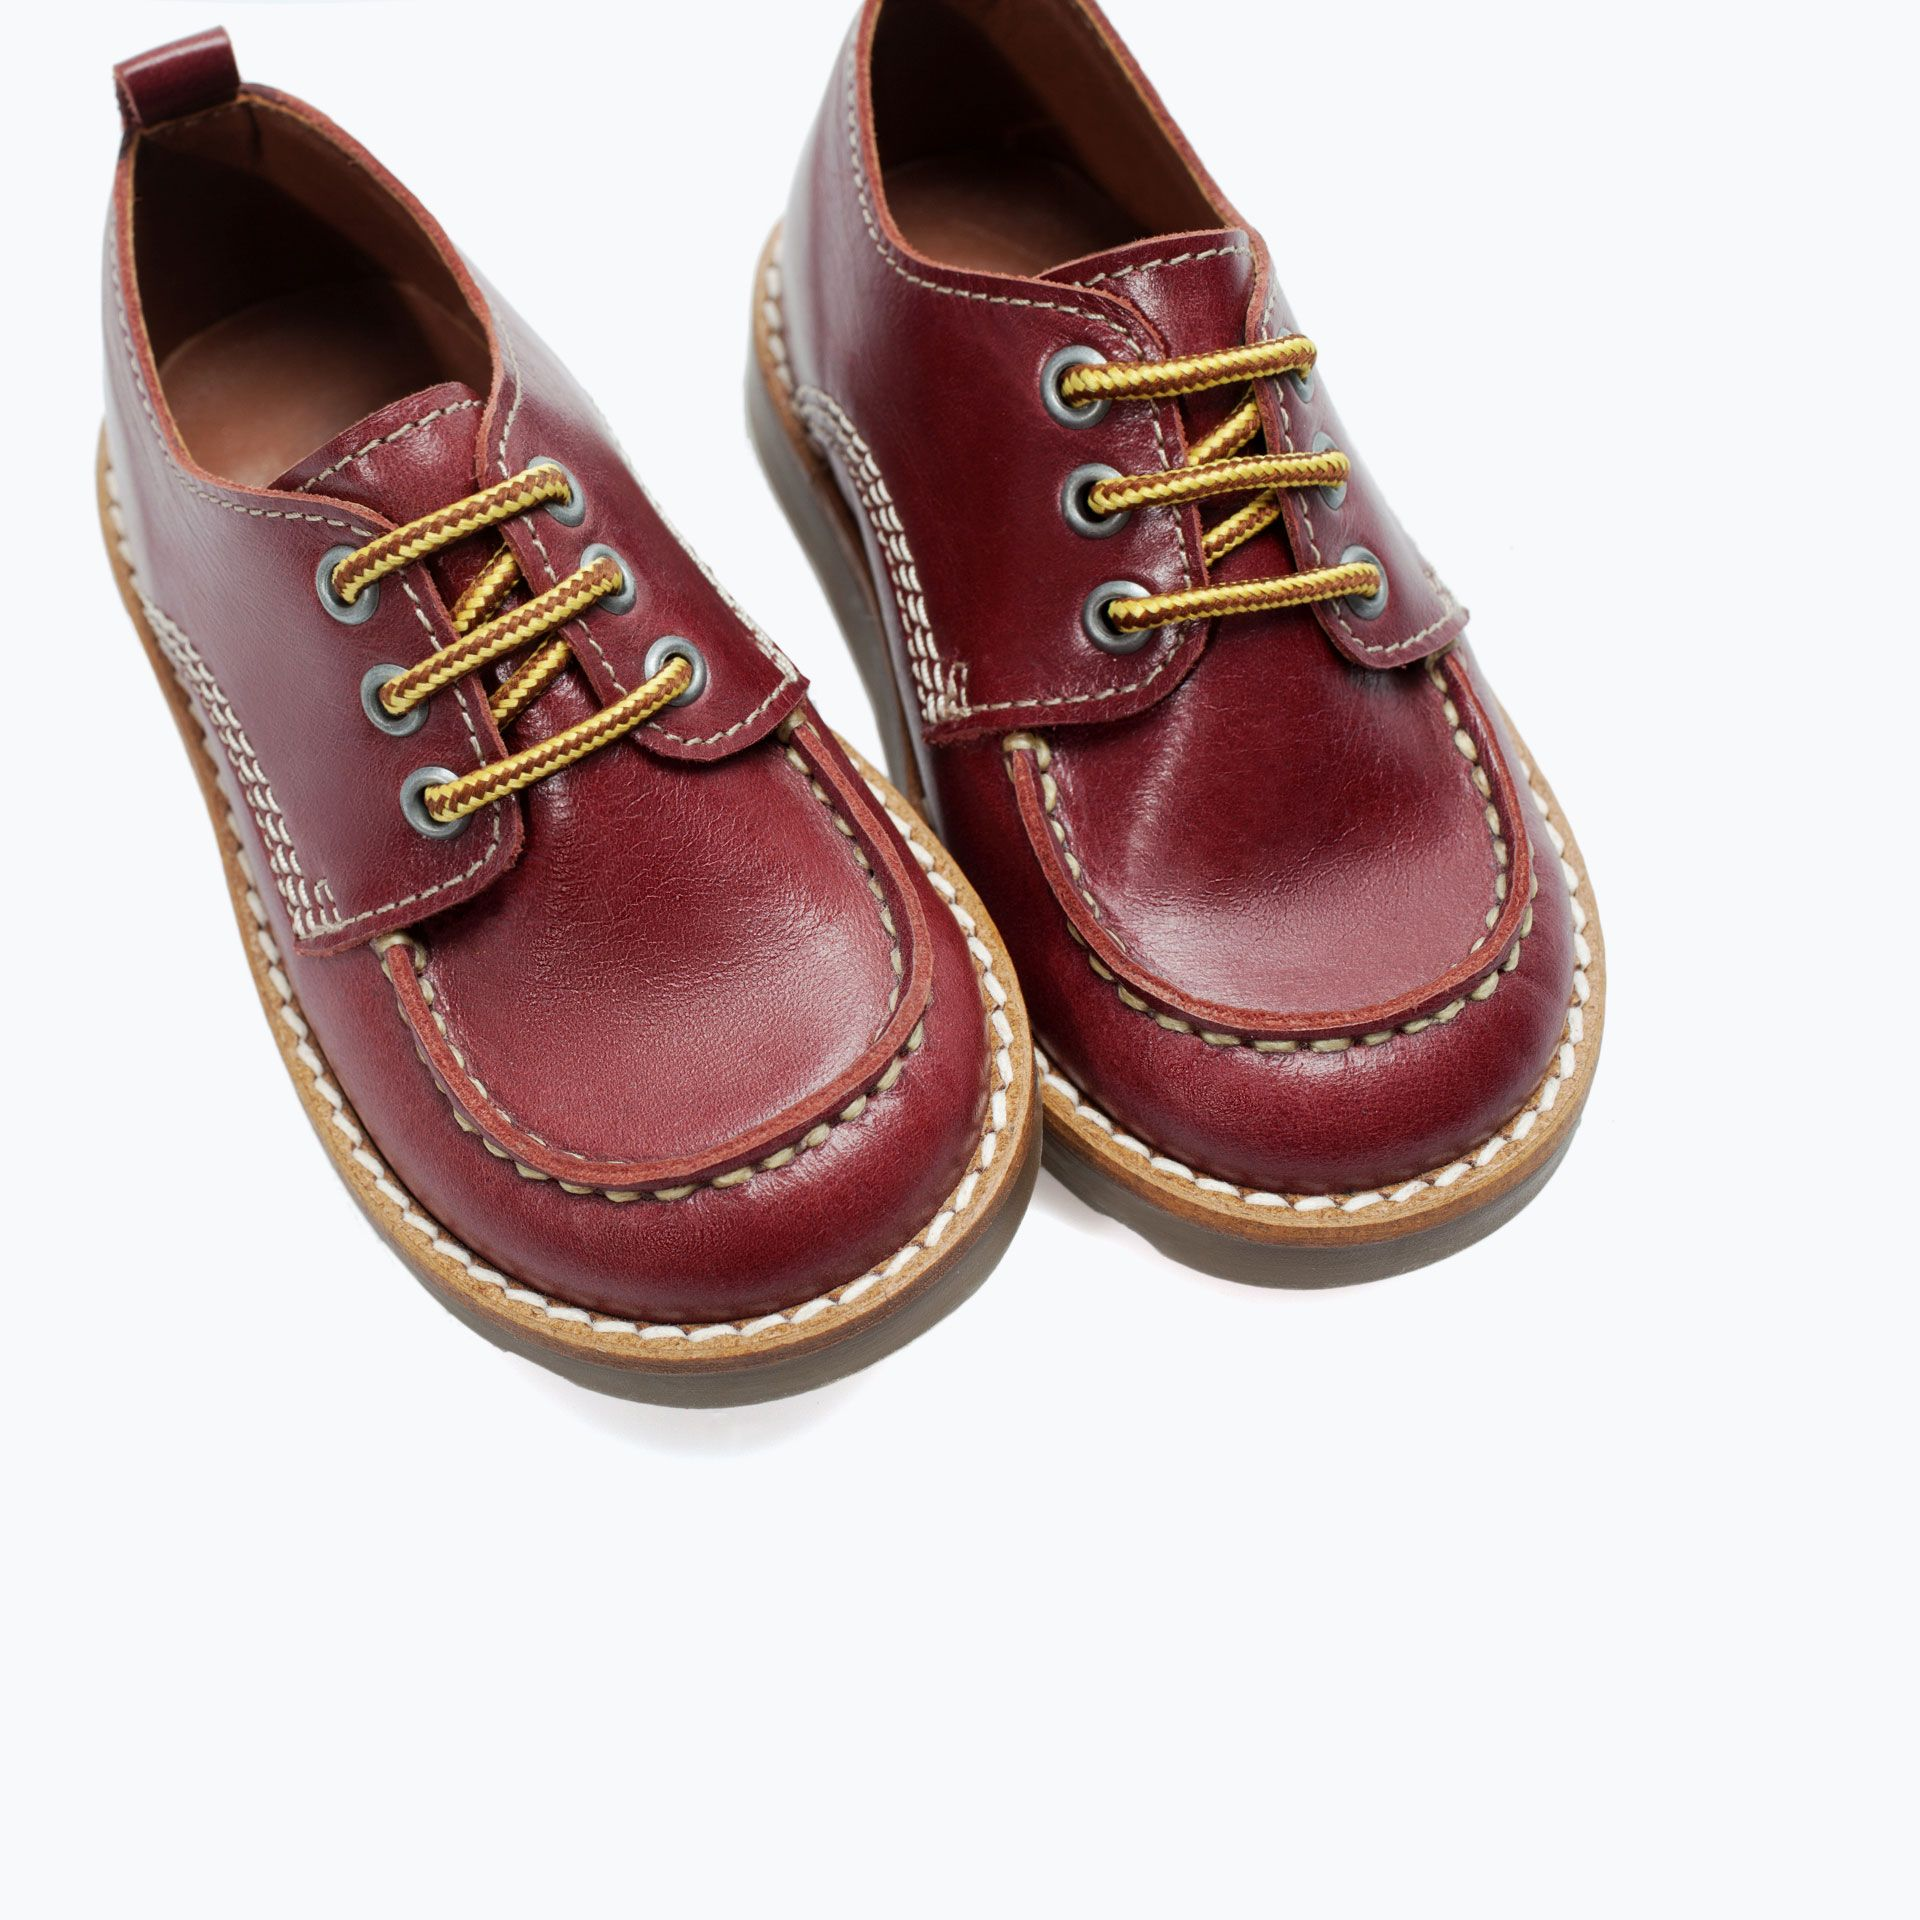 LEATHER SHOES from Zara for cub Pinterest